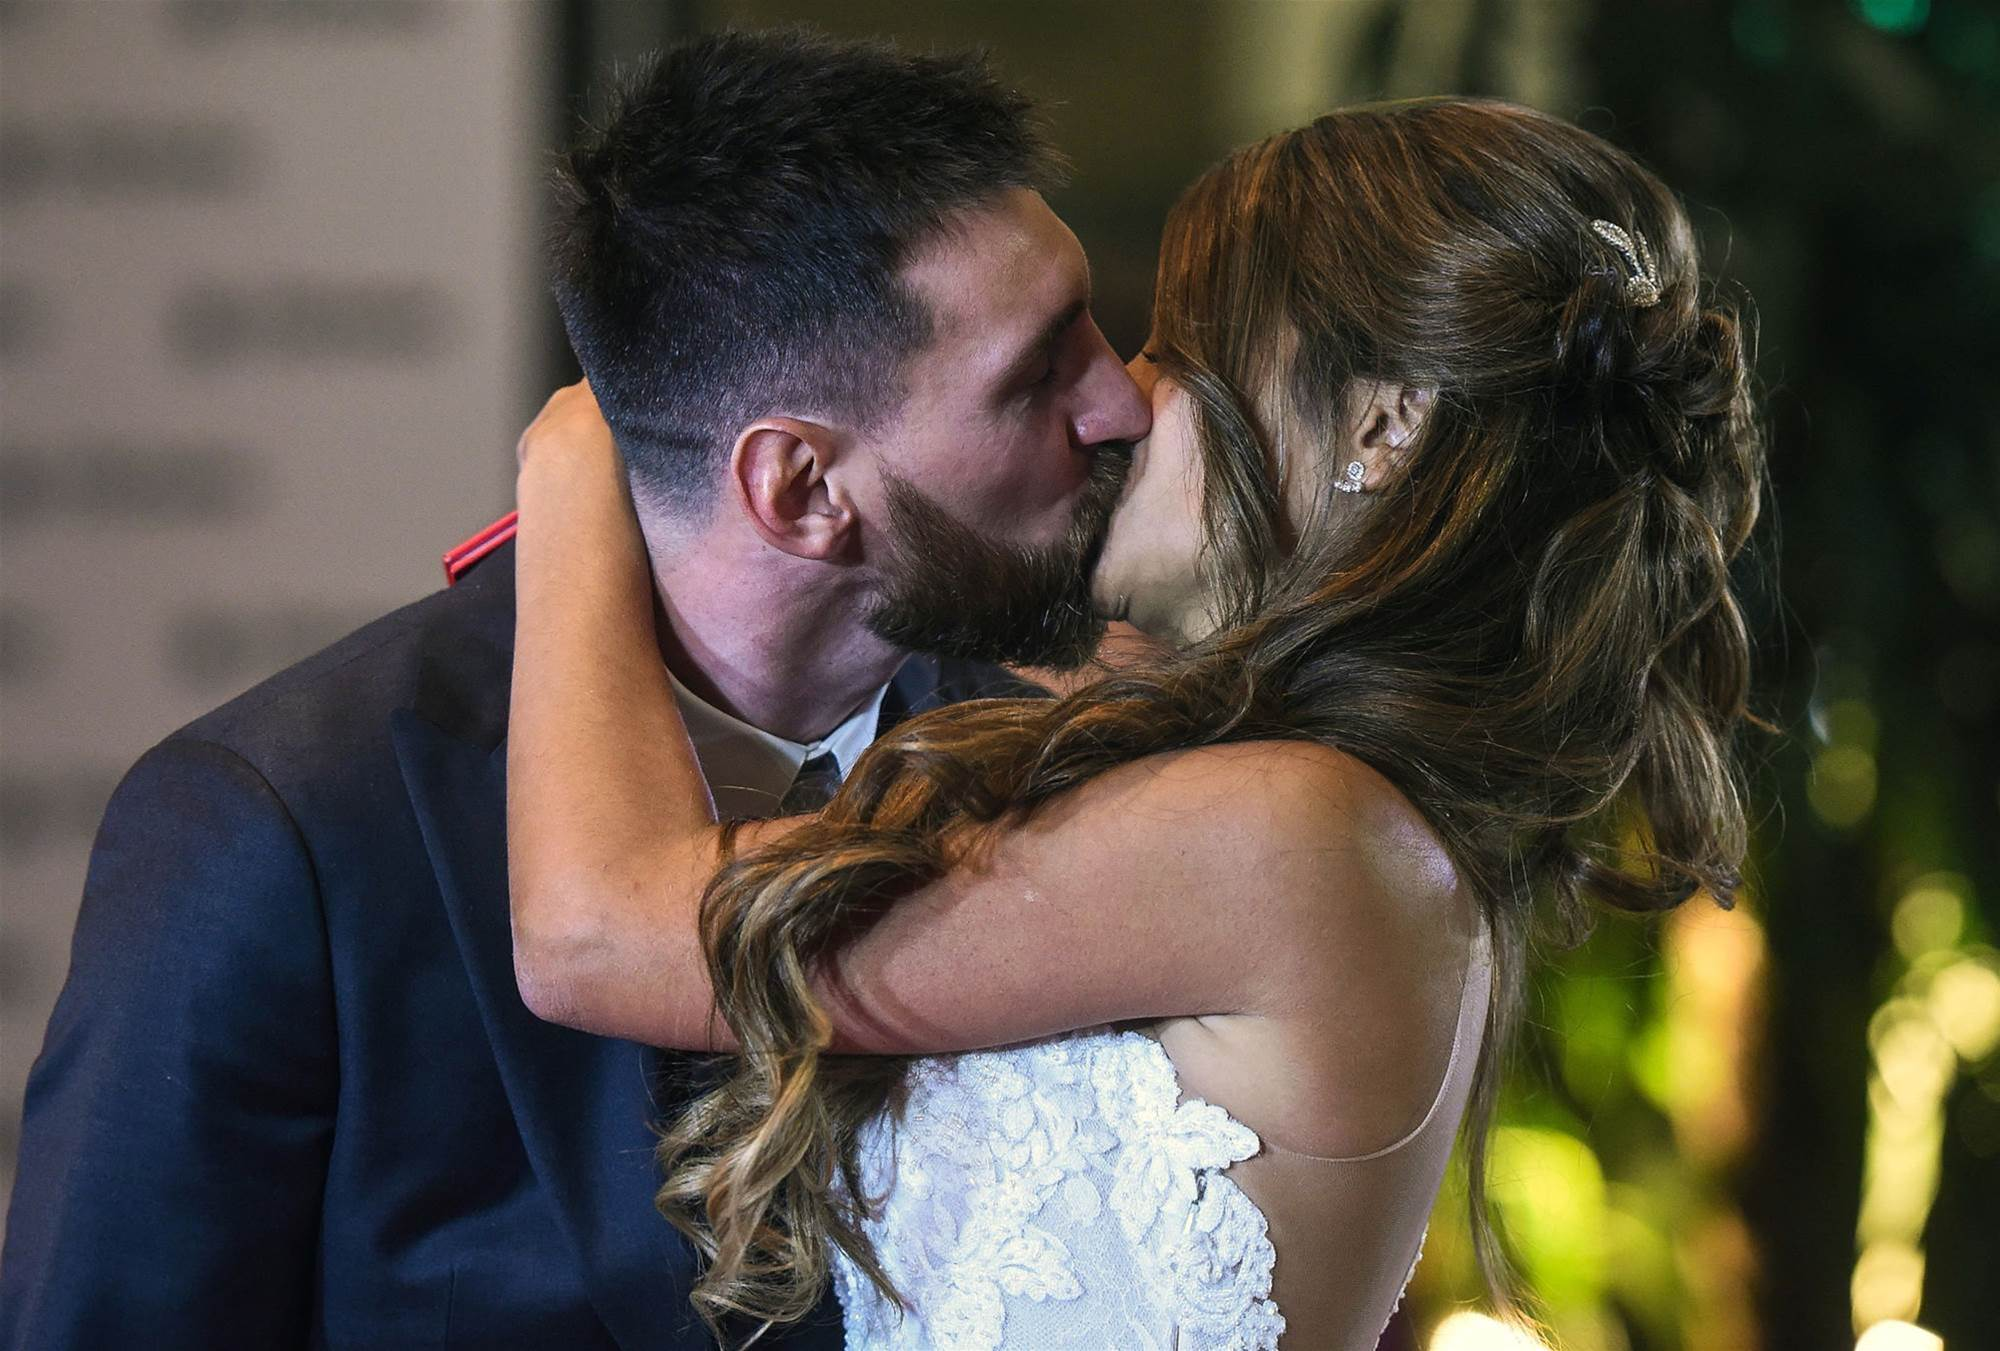 Football royalty, celebrities: Messi wedding pic special